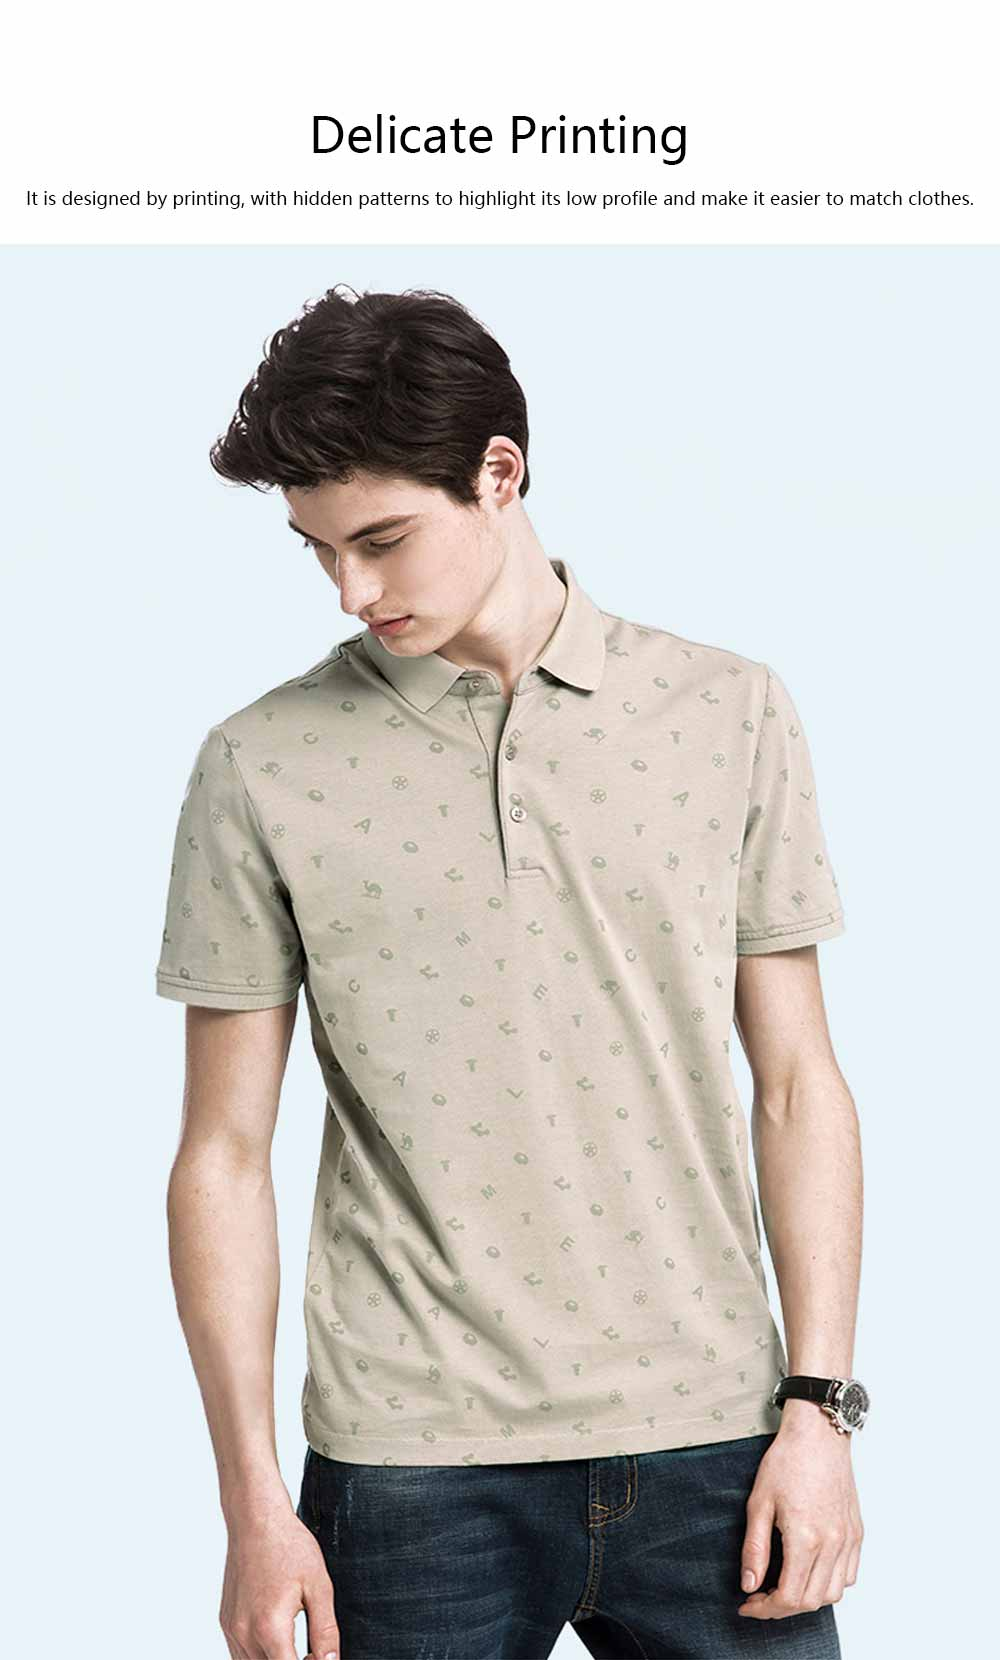 Male T-shirt Cotton Material Business Style Blouse, Peaked Lapel Stripe Printing Style Soft Casual Short Sleeve for Men POLO Shirt 4